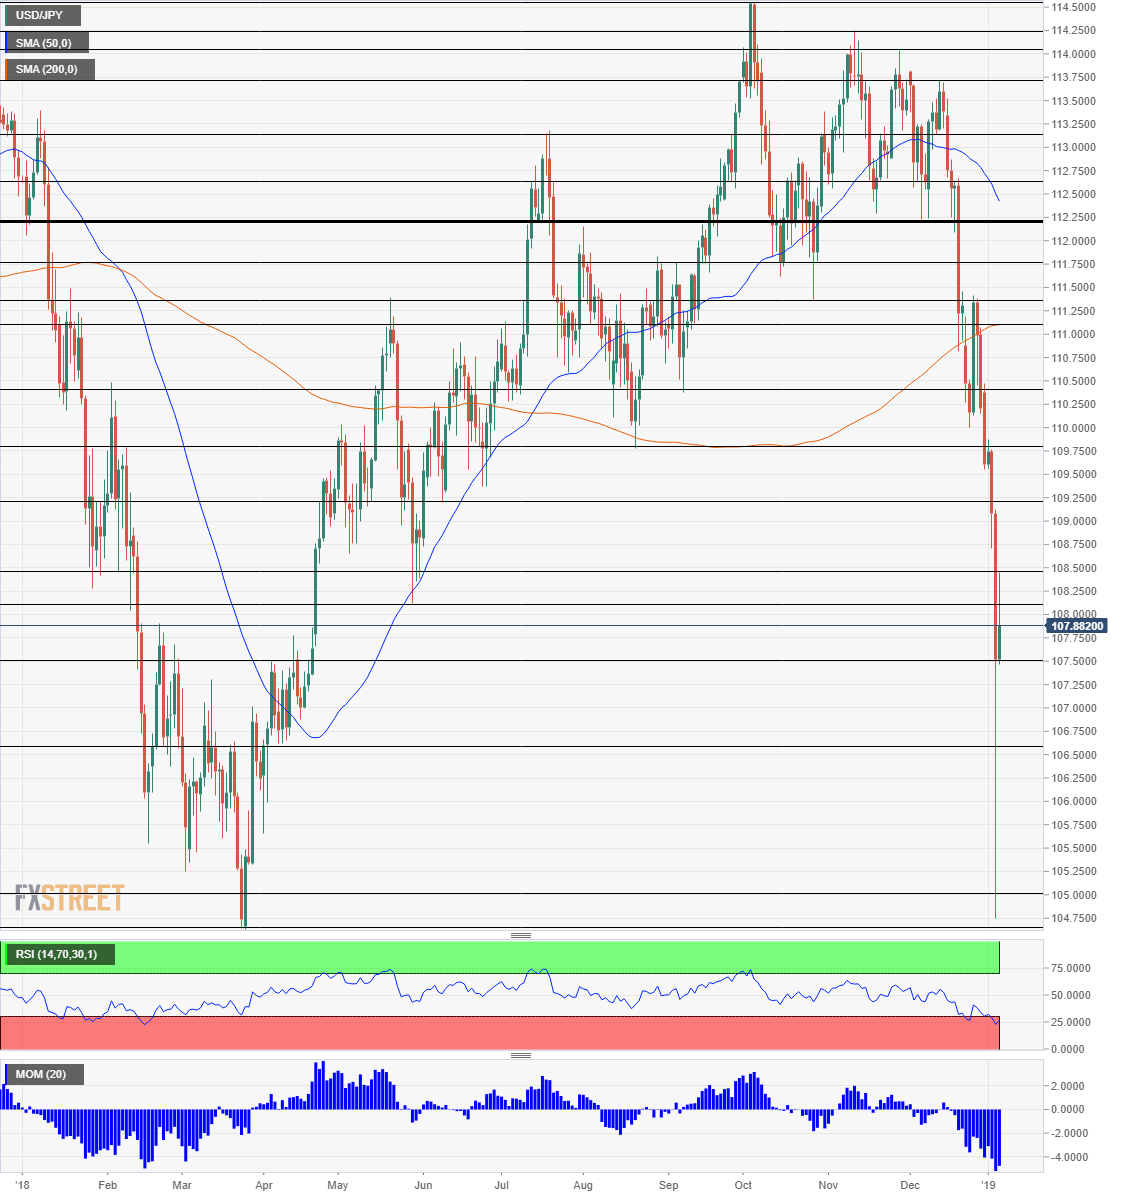 USD JPY Technical Analysis January 7 11 2019